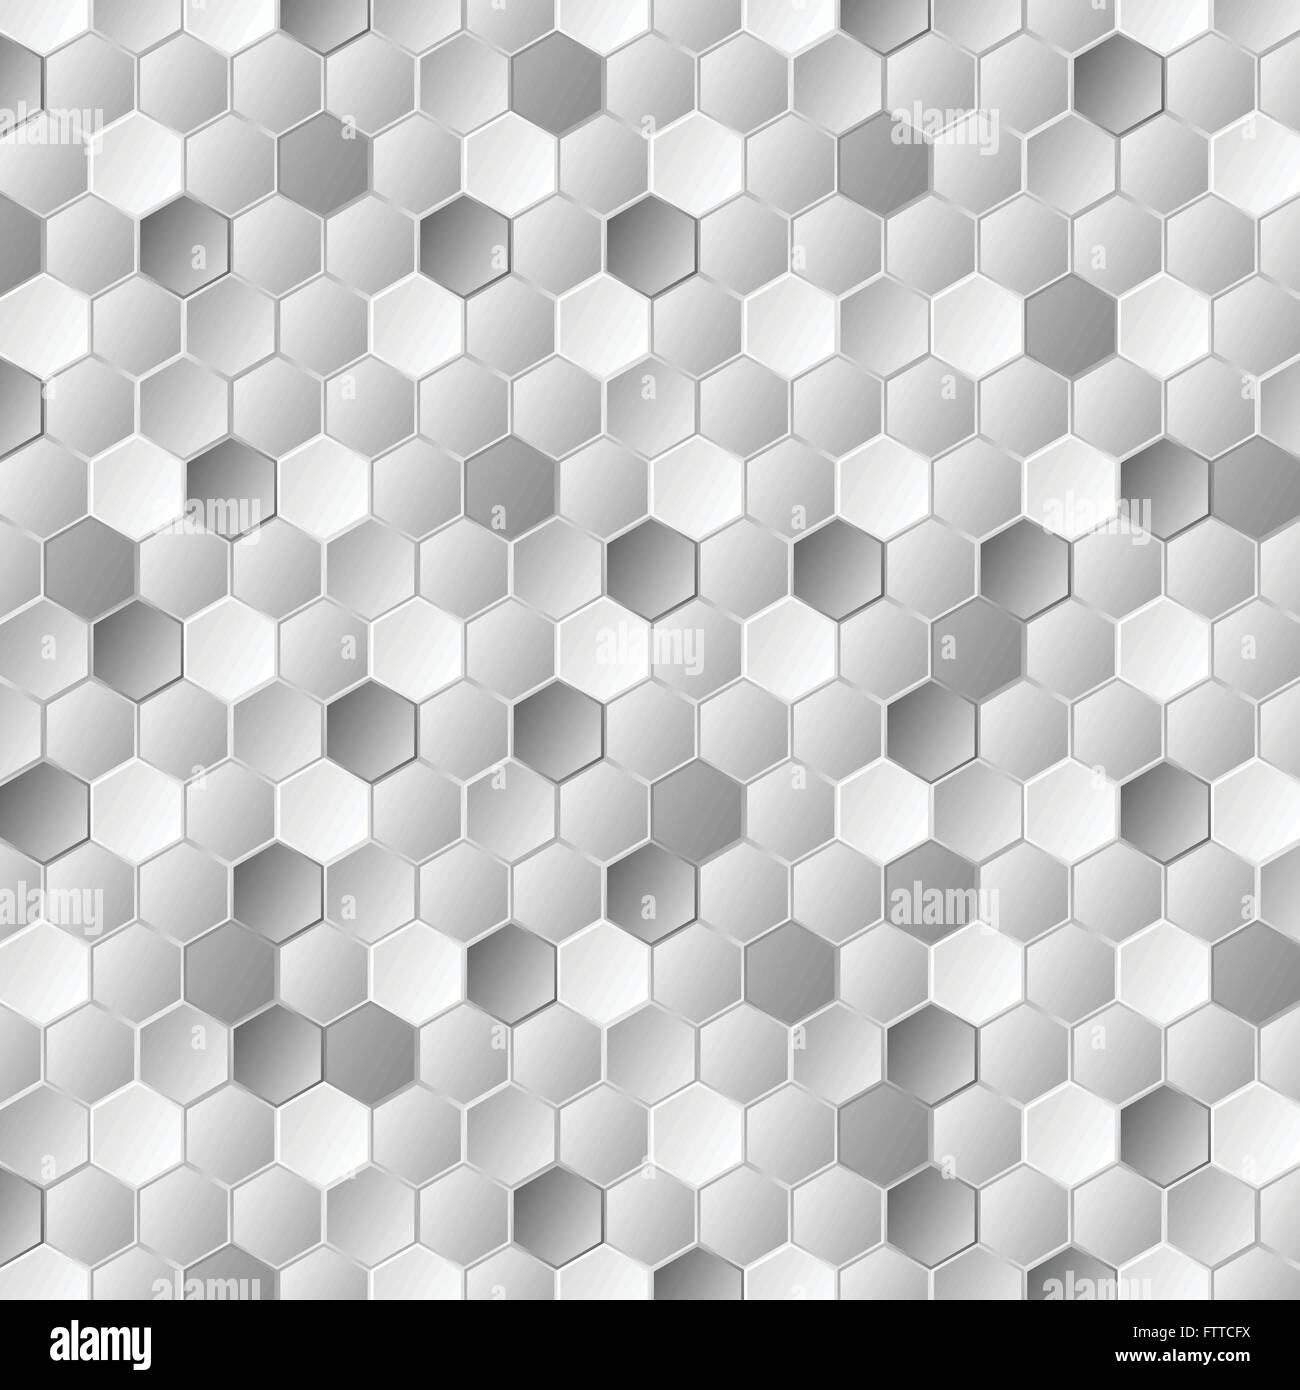 Abstract Metal Background Hexagons Vector Stock Photos & Abstract ...